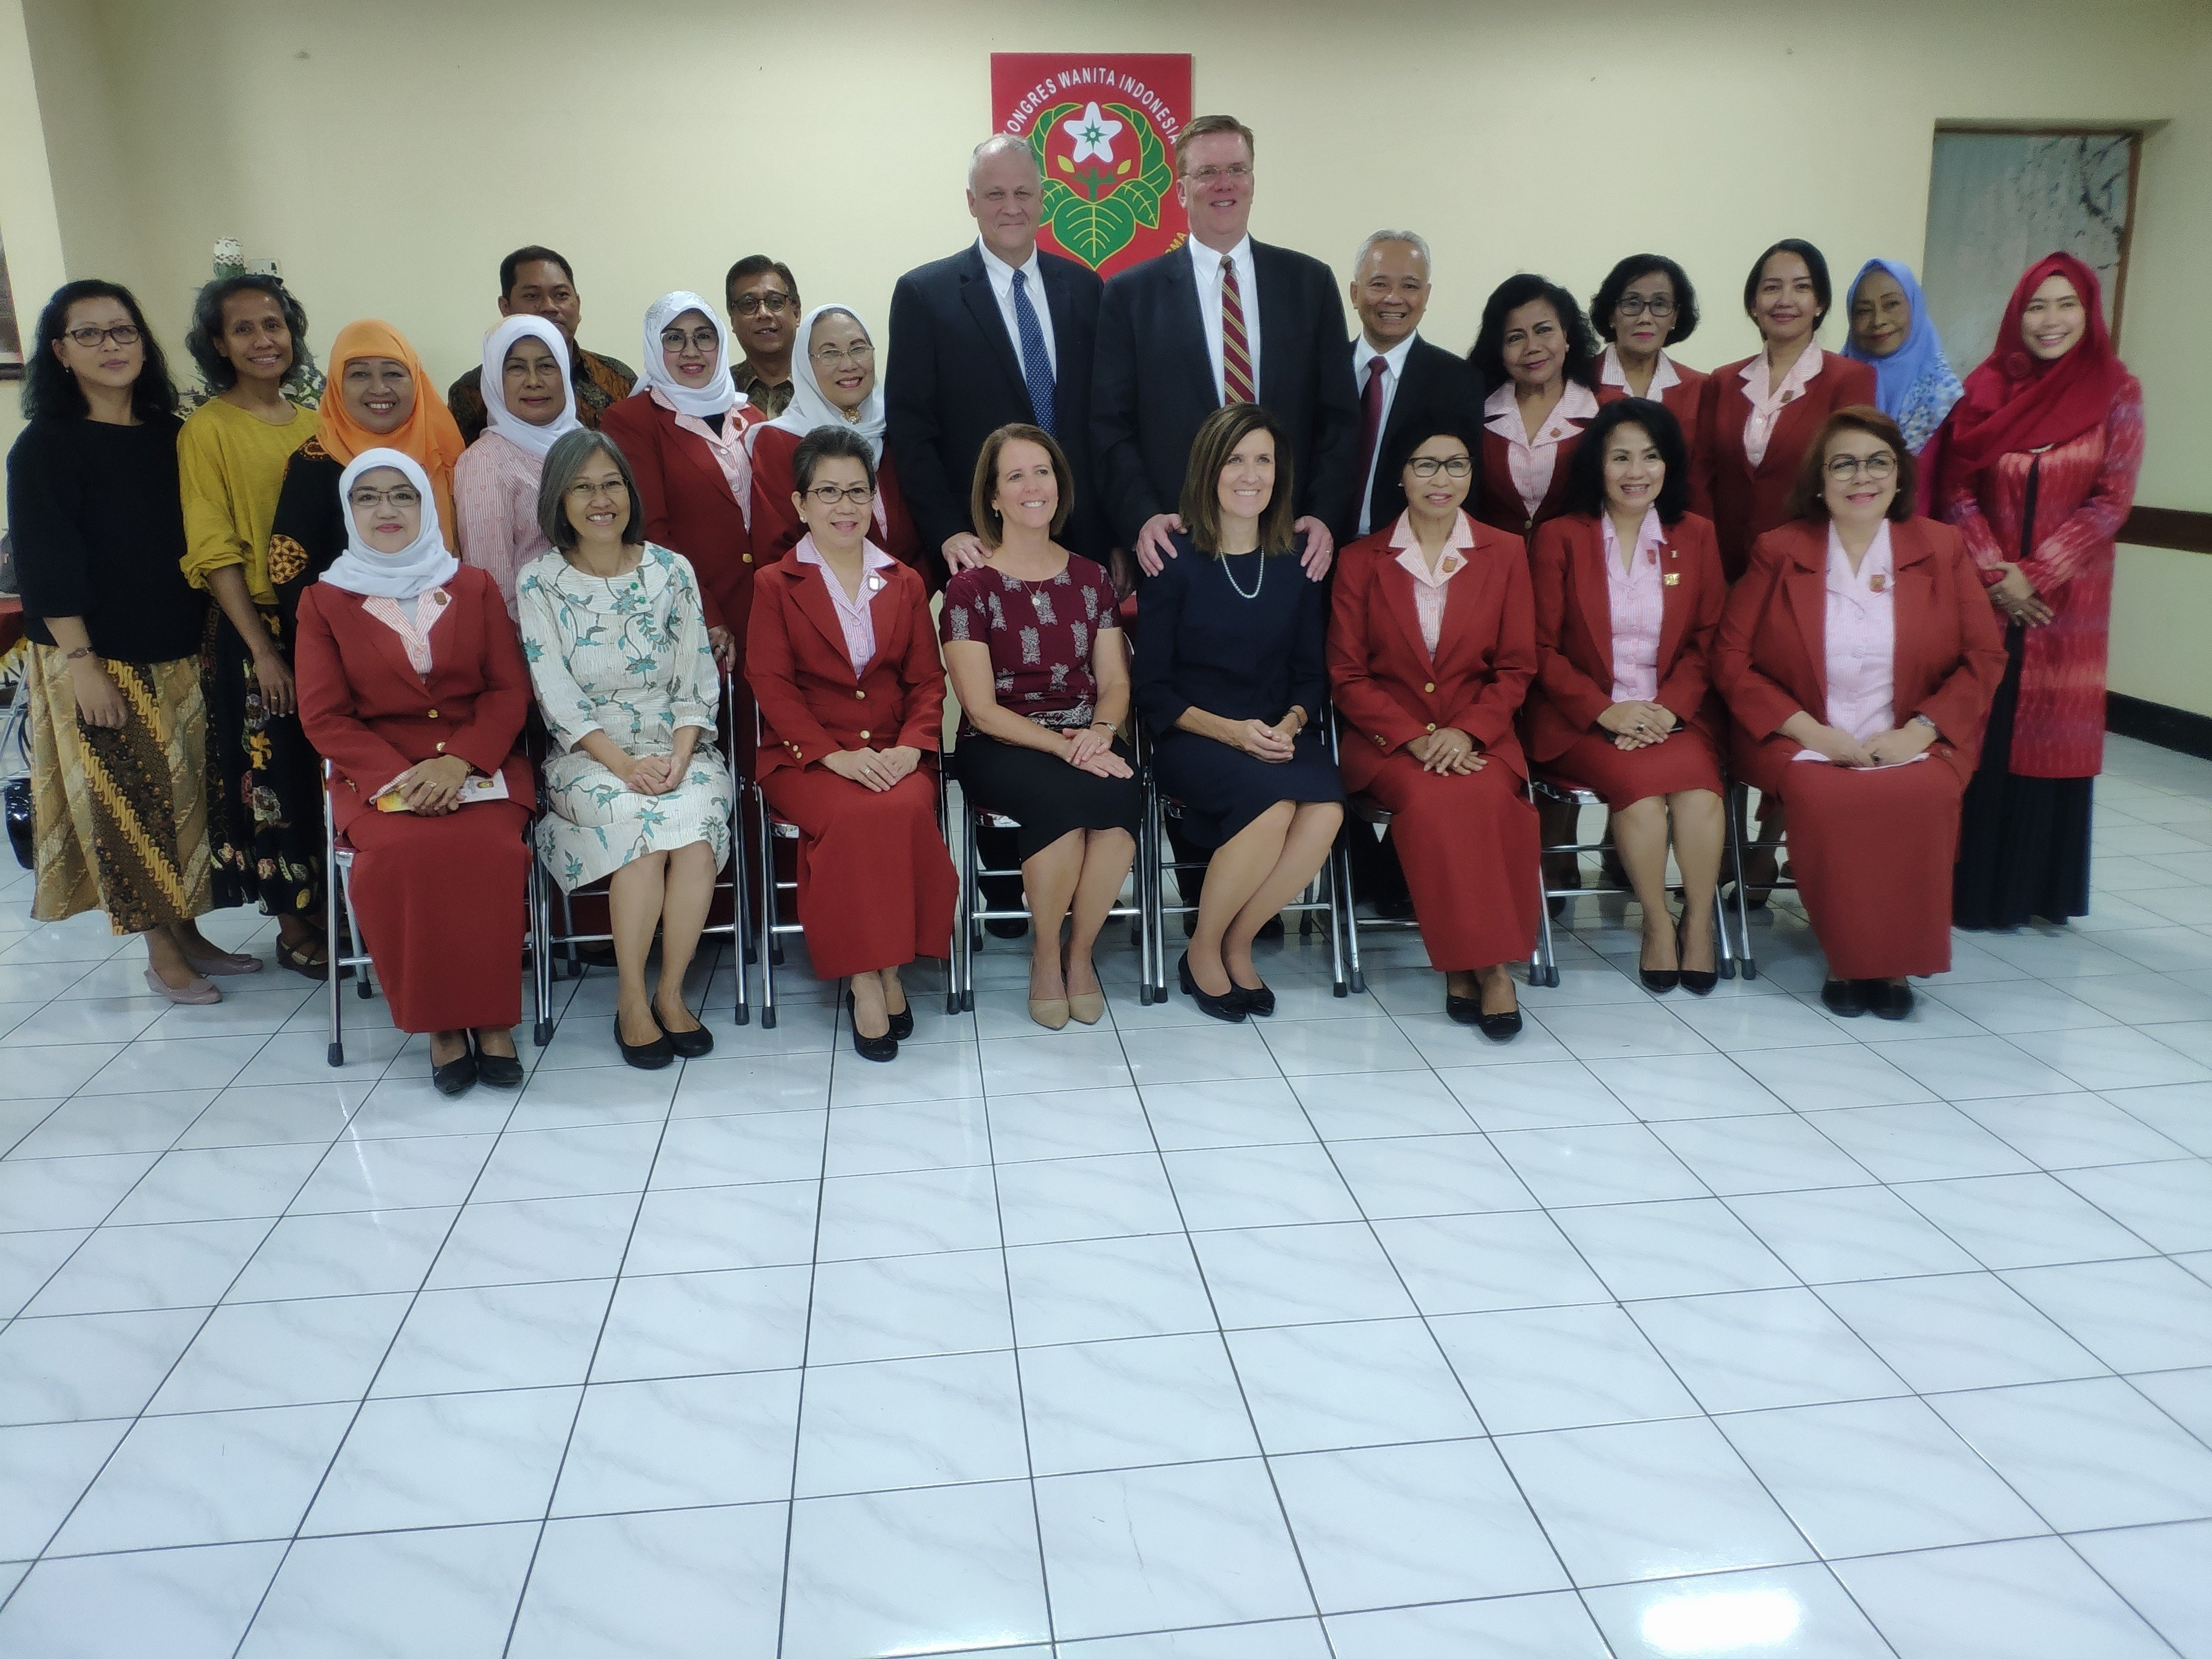 Sister Michelle D. Craig, first counselor in the Young Women general presidency, takes a photo with members of the Indonesia Women's Congress during a visit to the Asia Area of the Church from Aug. 17 to 24, 2019.